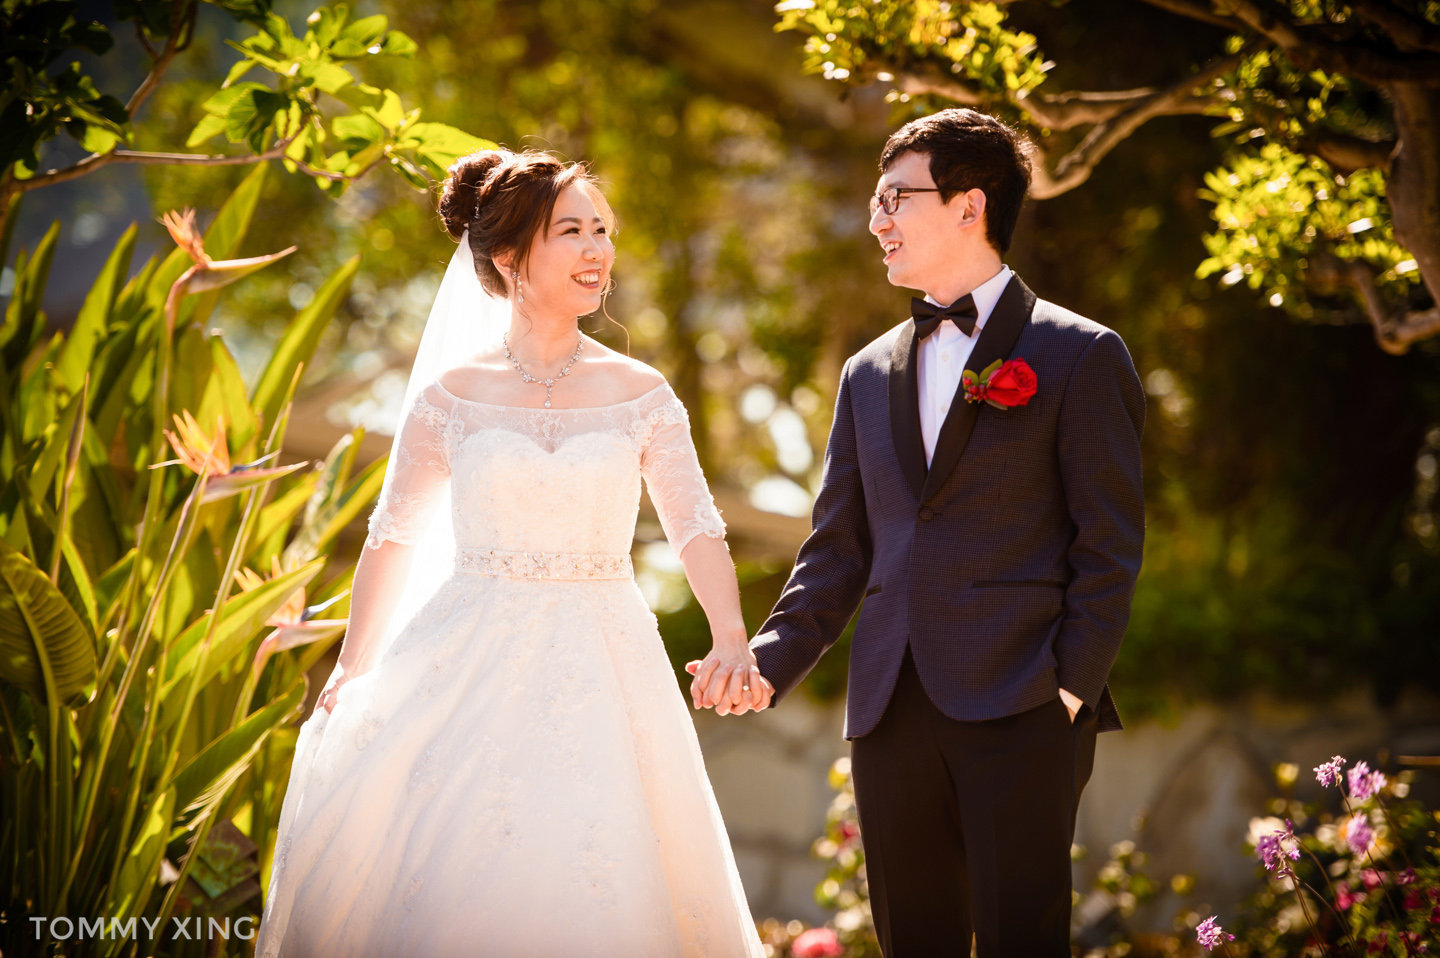 Los Angeles Wedding Photographer 洛杉矶婚礼婚纱摄影师 Tommy Xing-81.JPG